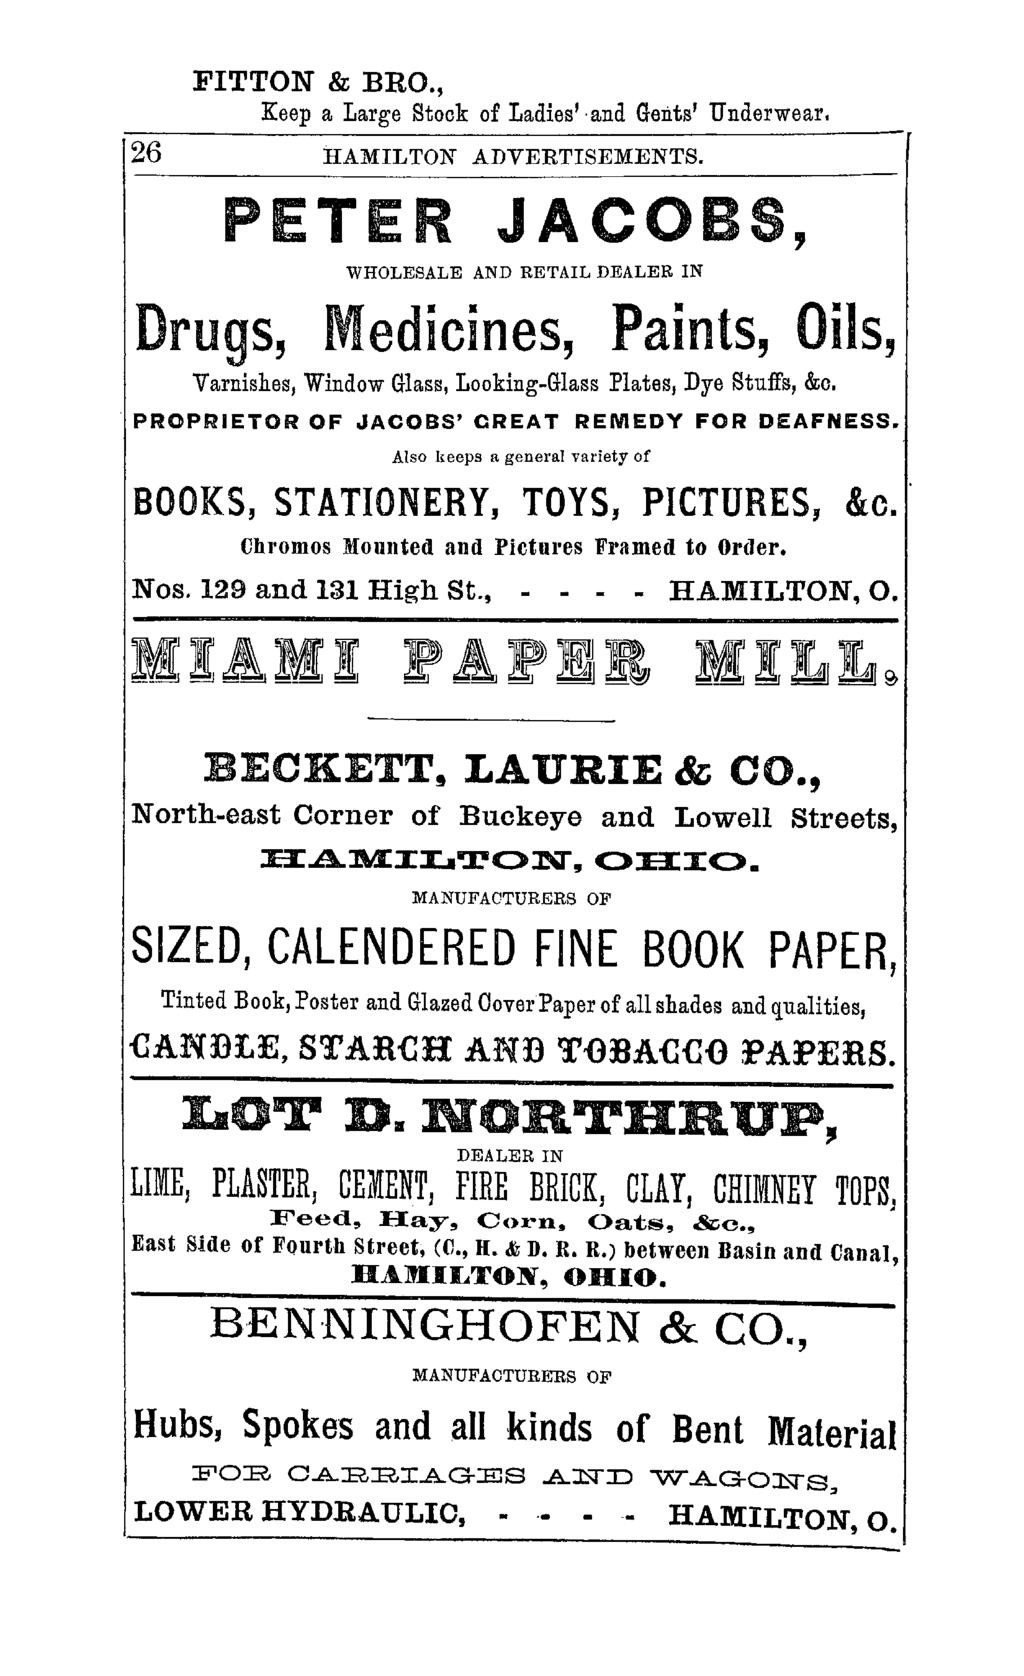 FITTON & BRO., Keep a Large Stock of Ladies' and Gents' Underwear. 26 HAMILTON ADVERTISEMENTS.